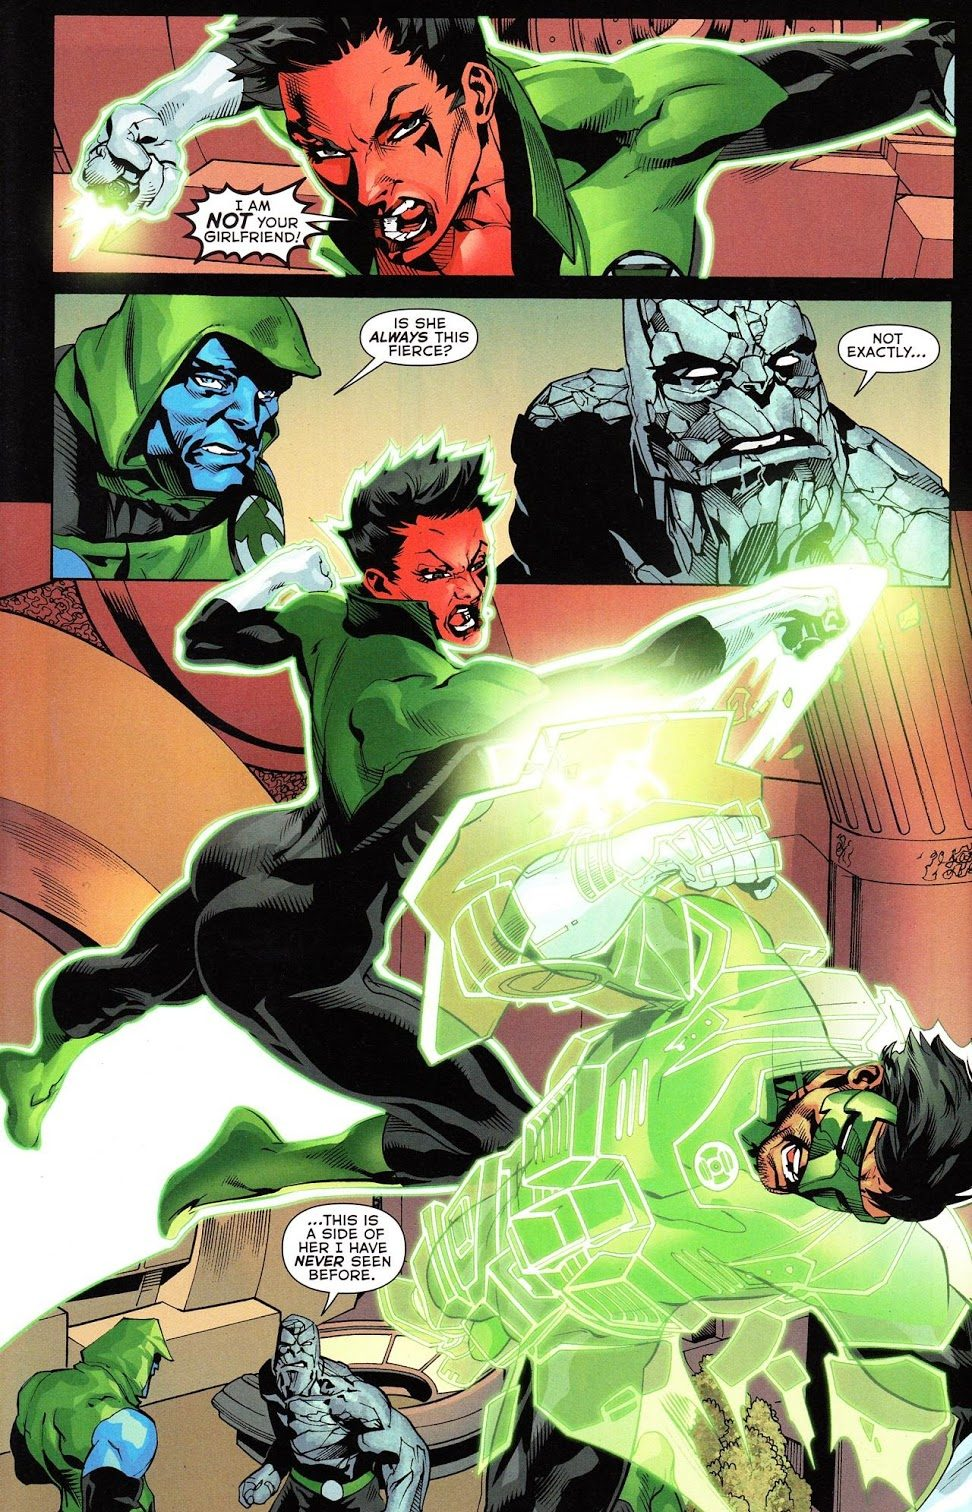 Kyle Rayner VS Soranik Natu (War of the Green Lanterns Aftermath #2)